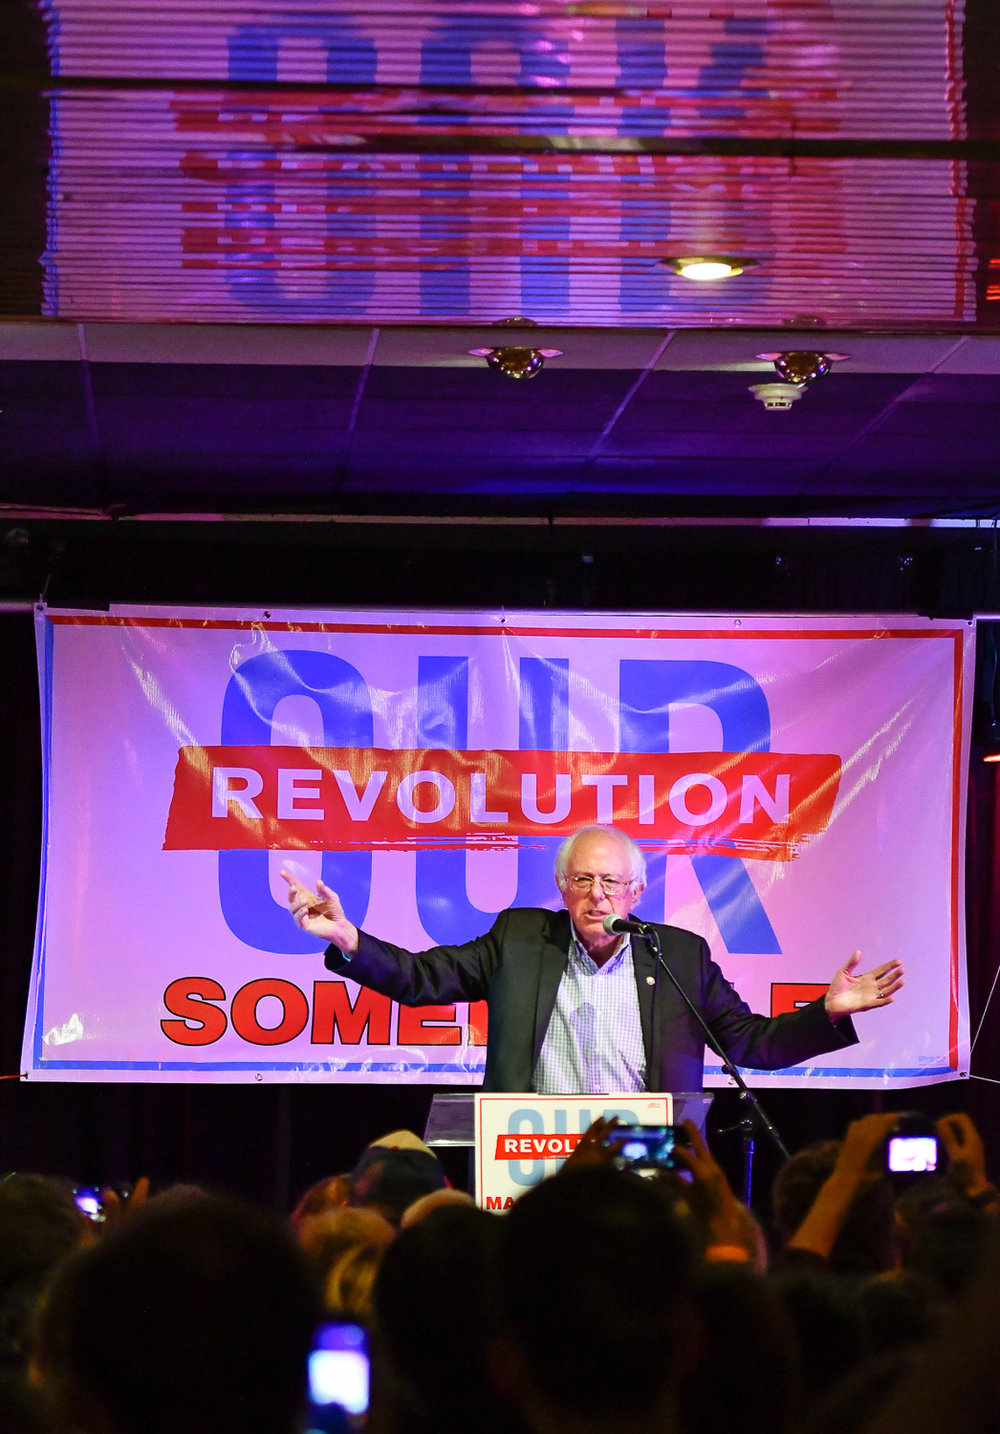 Nikon D500, 1/320 @f/3.2, ISO 4000, 70-200mm  Vermont Senator Bernie Sanders addresses community members as he endorses Our Revolution Somerville at the ONCE Ballroom in Somerville, Monday, Oct. 23, 2017.